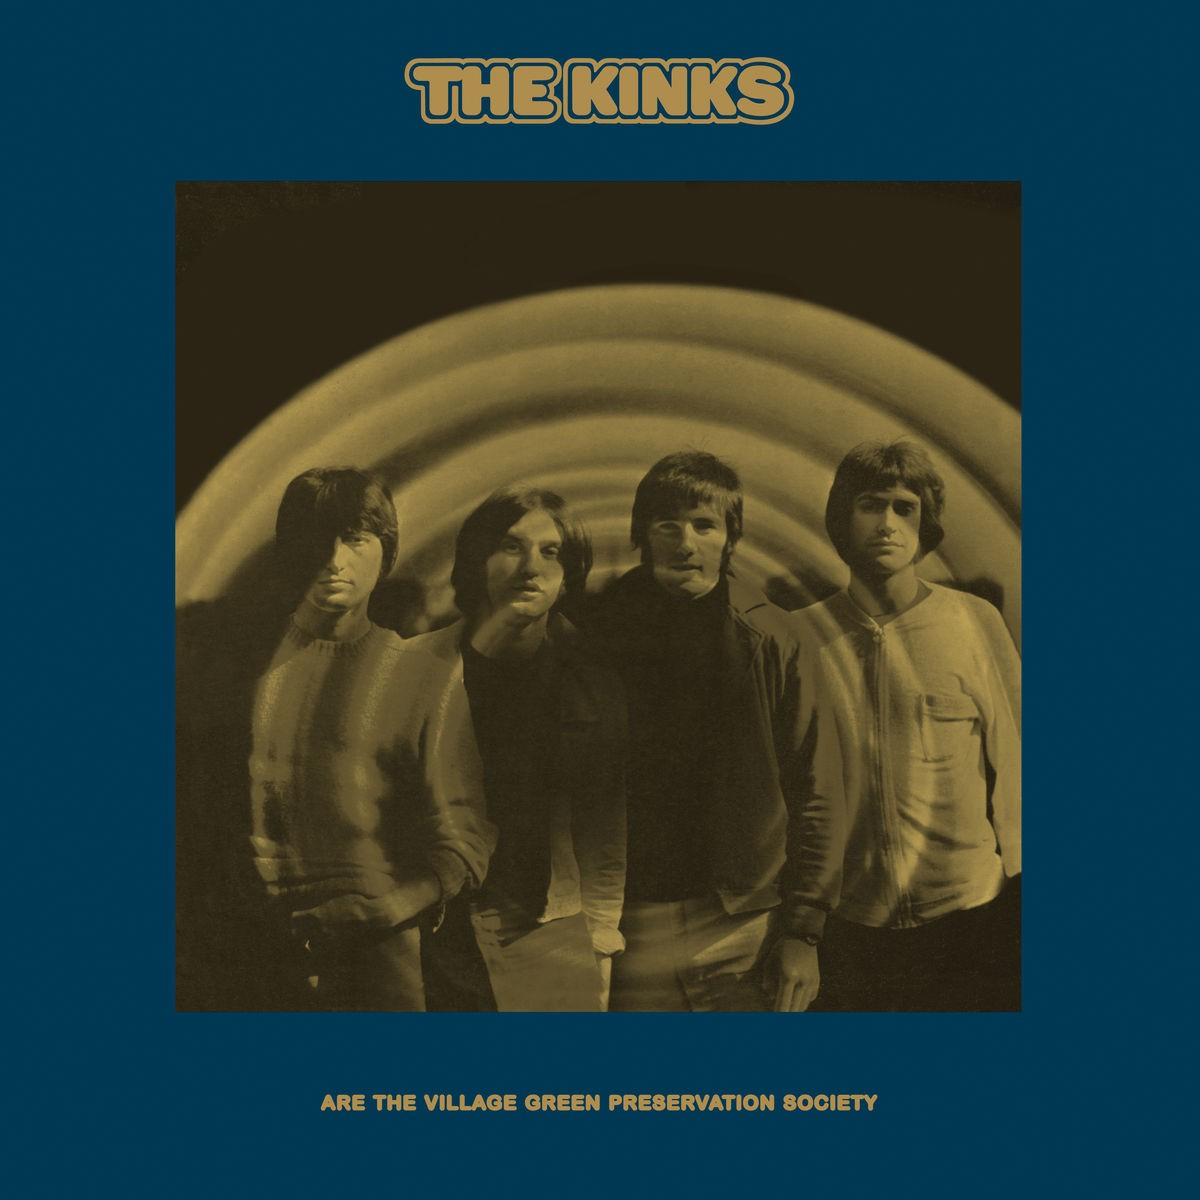 Kinks - The Kinks Are the Village Green Preservation Society (2018 Deluxe) VINYL - 5053840204